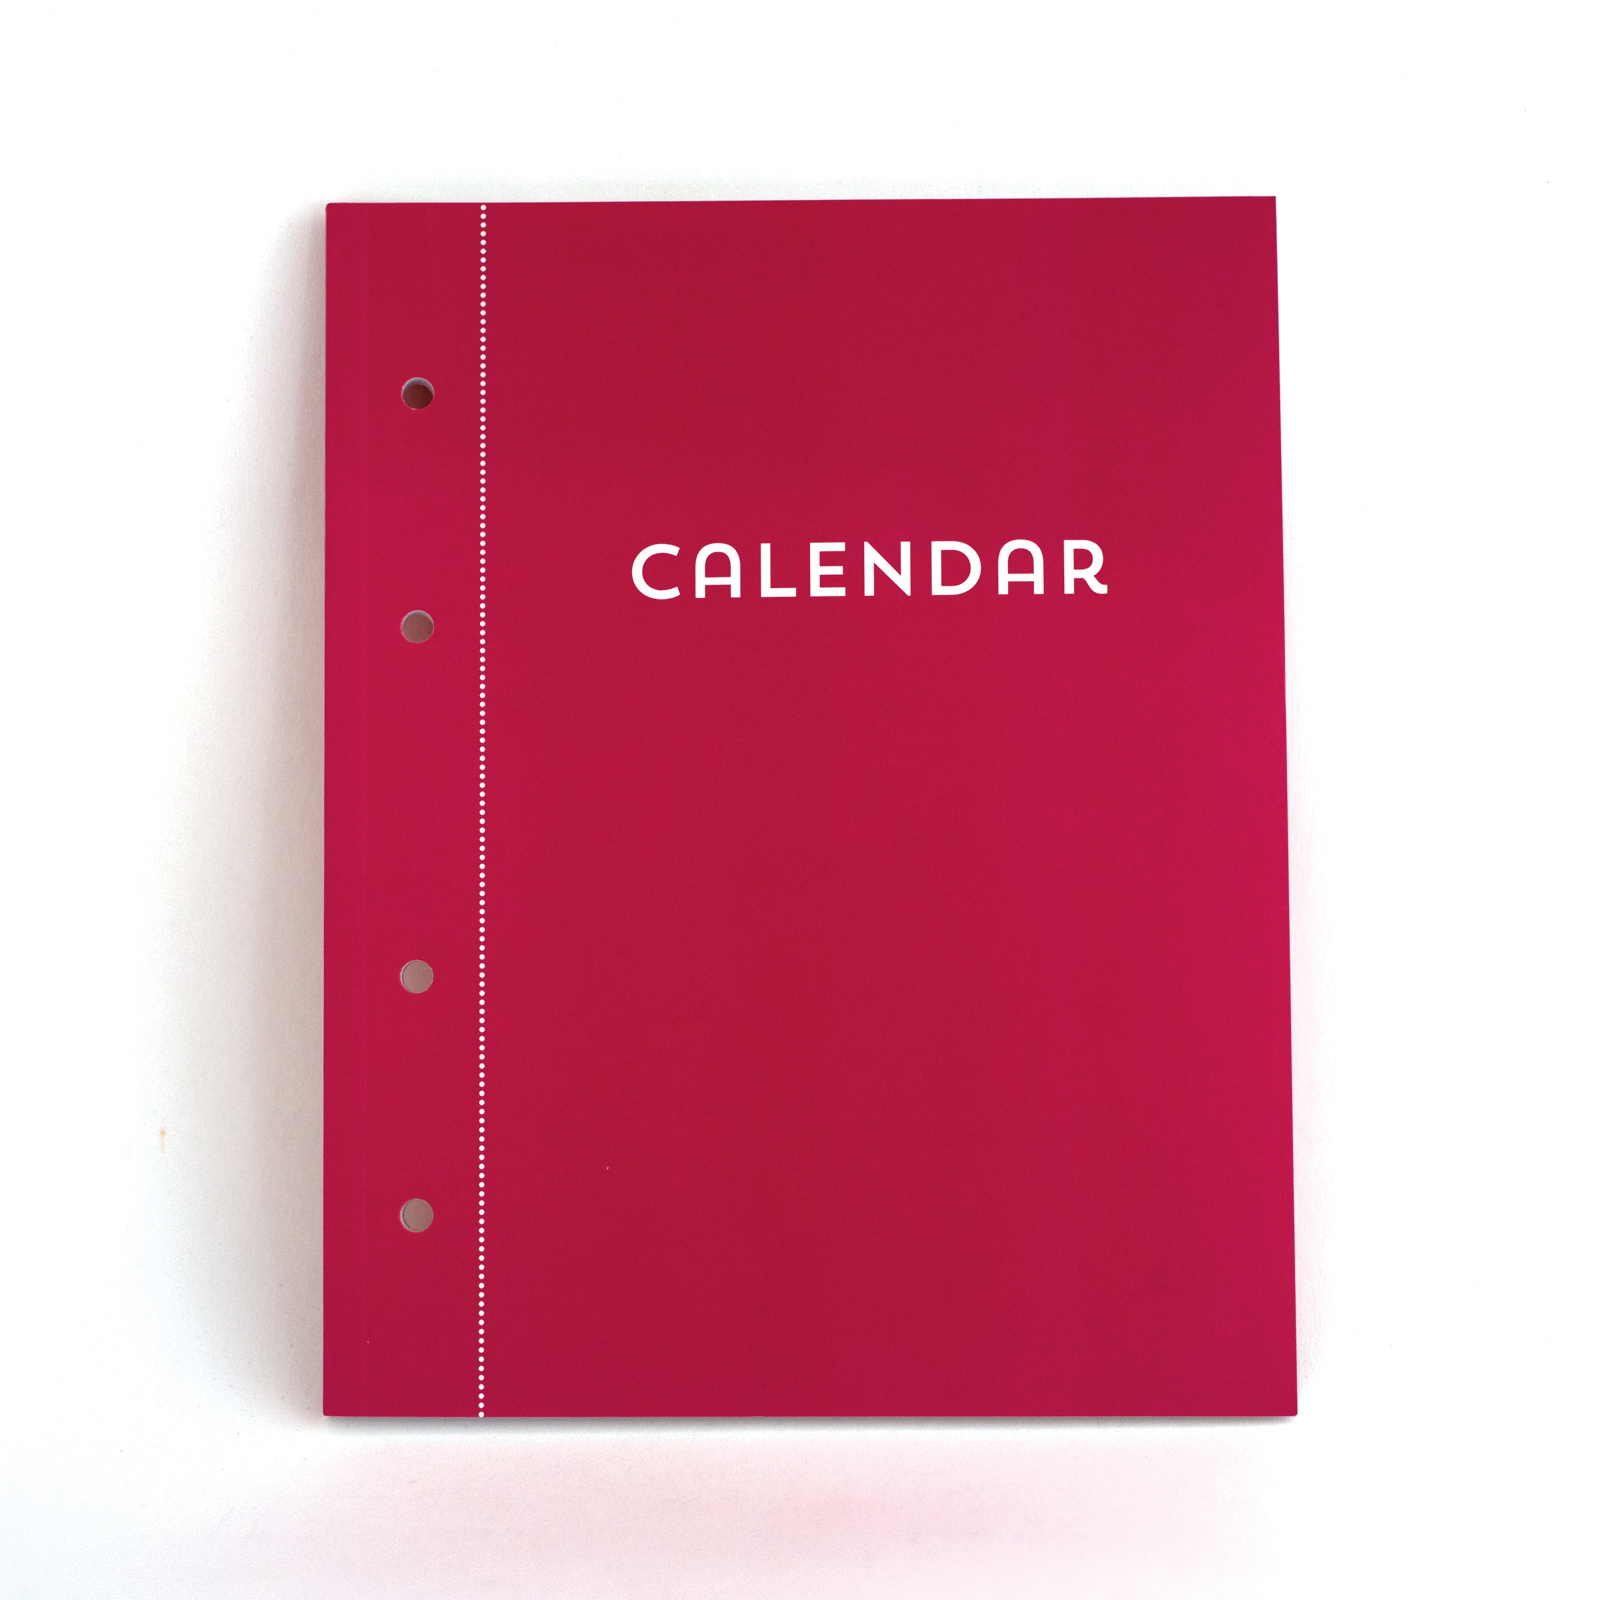 Calendar Planner Book : Find the calendar planner book by recollections at michaels